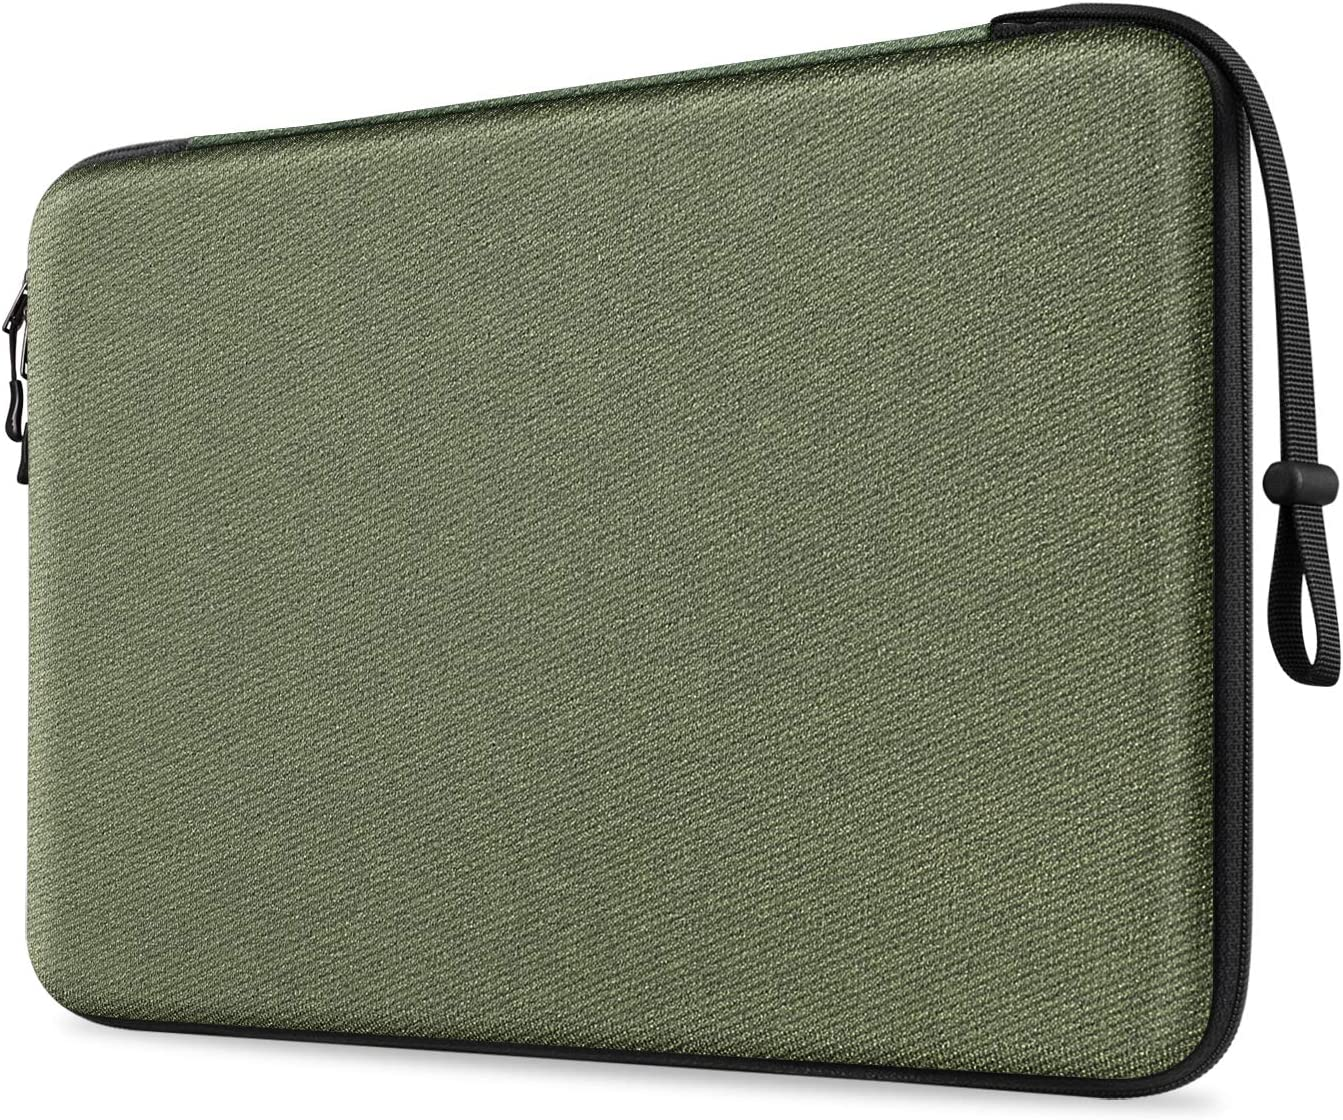 FINPAC 13-inch Hard Shell Laptop Sleeve Case for 13.3